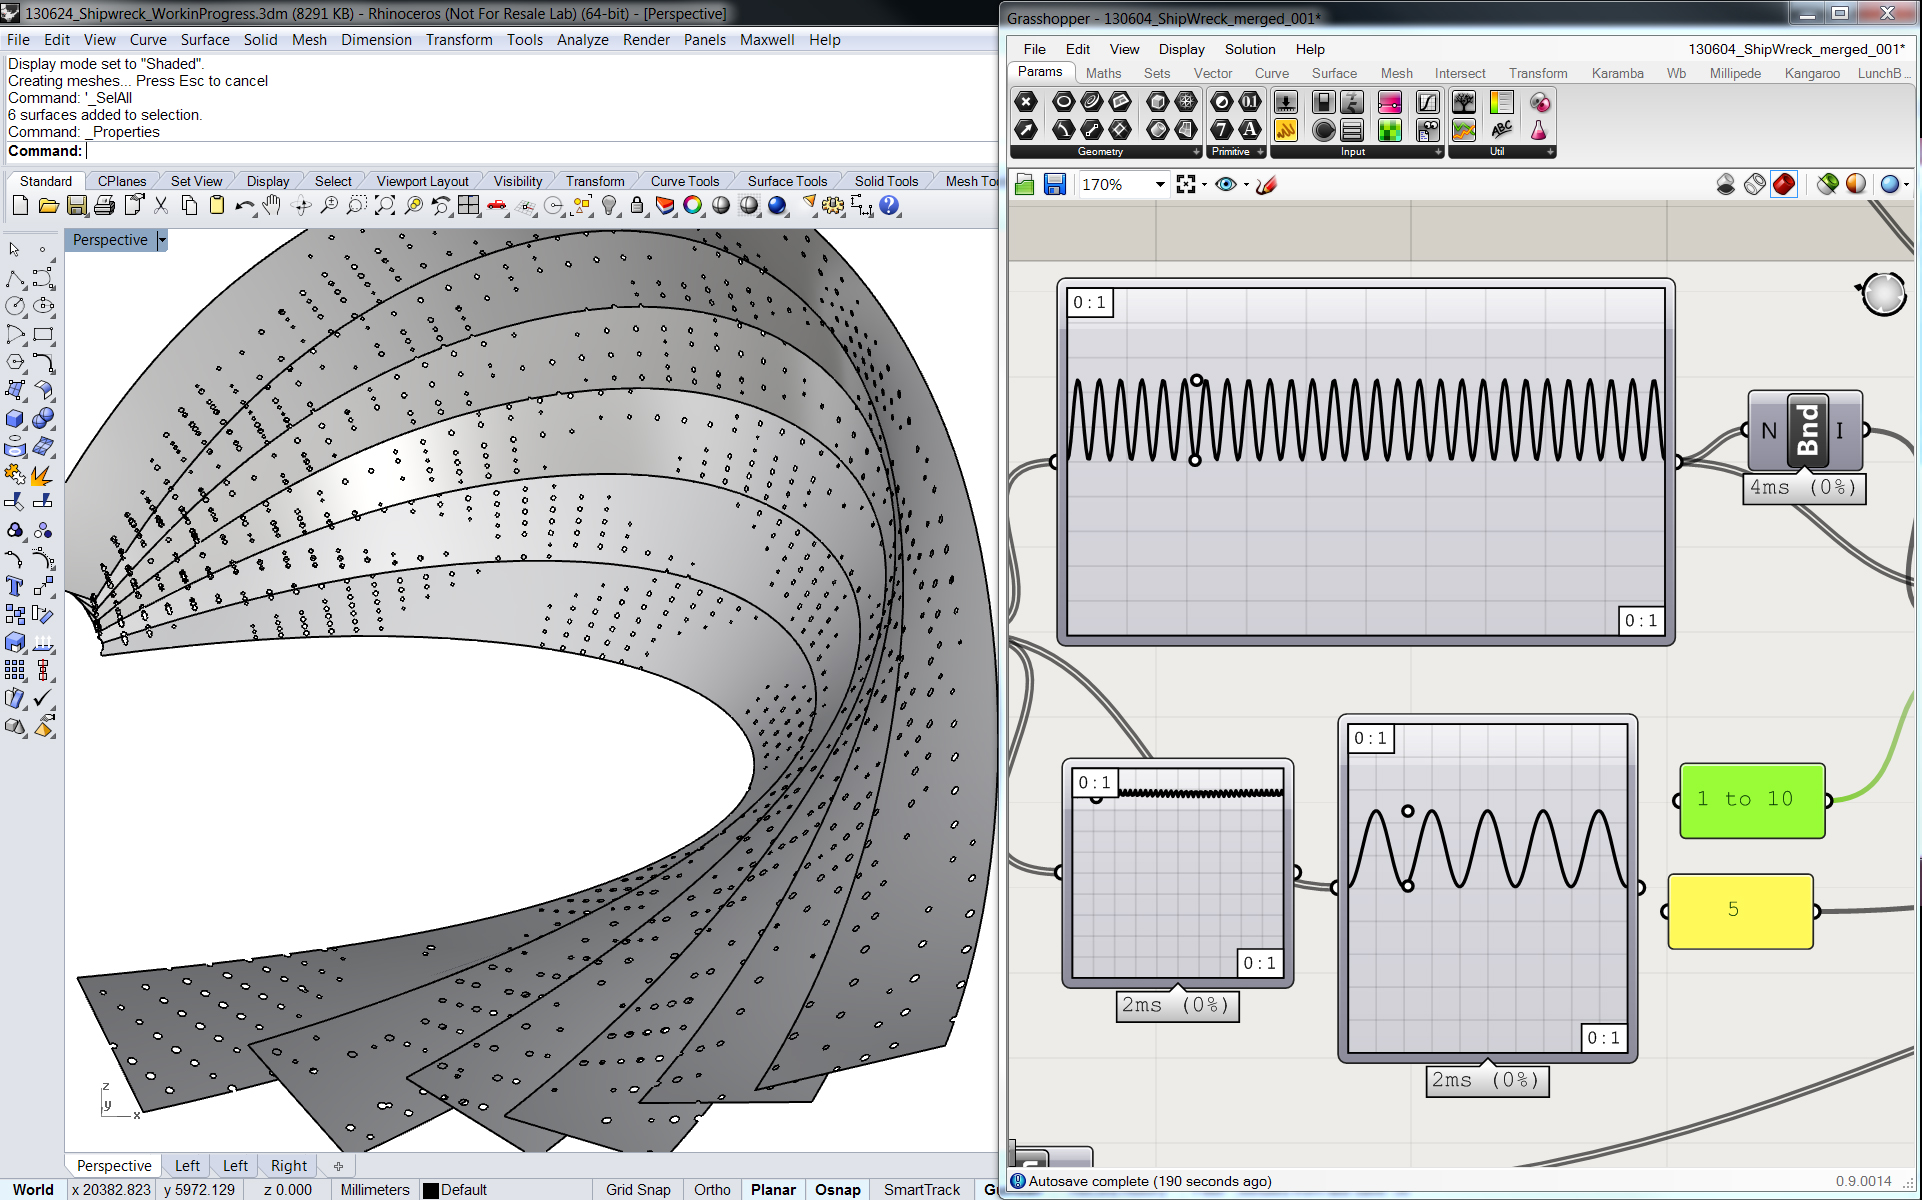 The Sine curve Interface controlling the back strips openings on Grasshopper